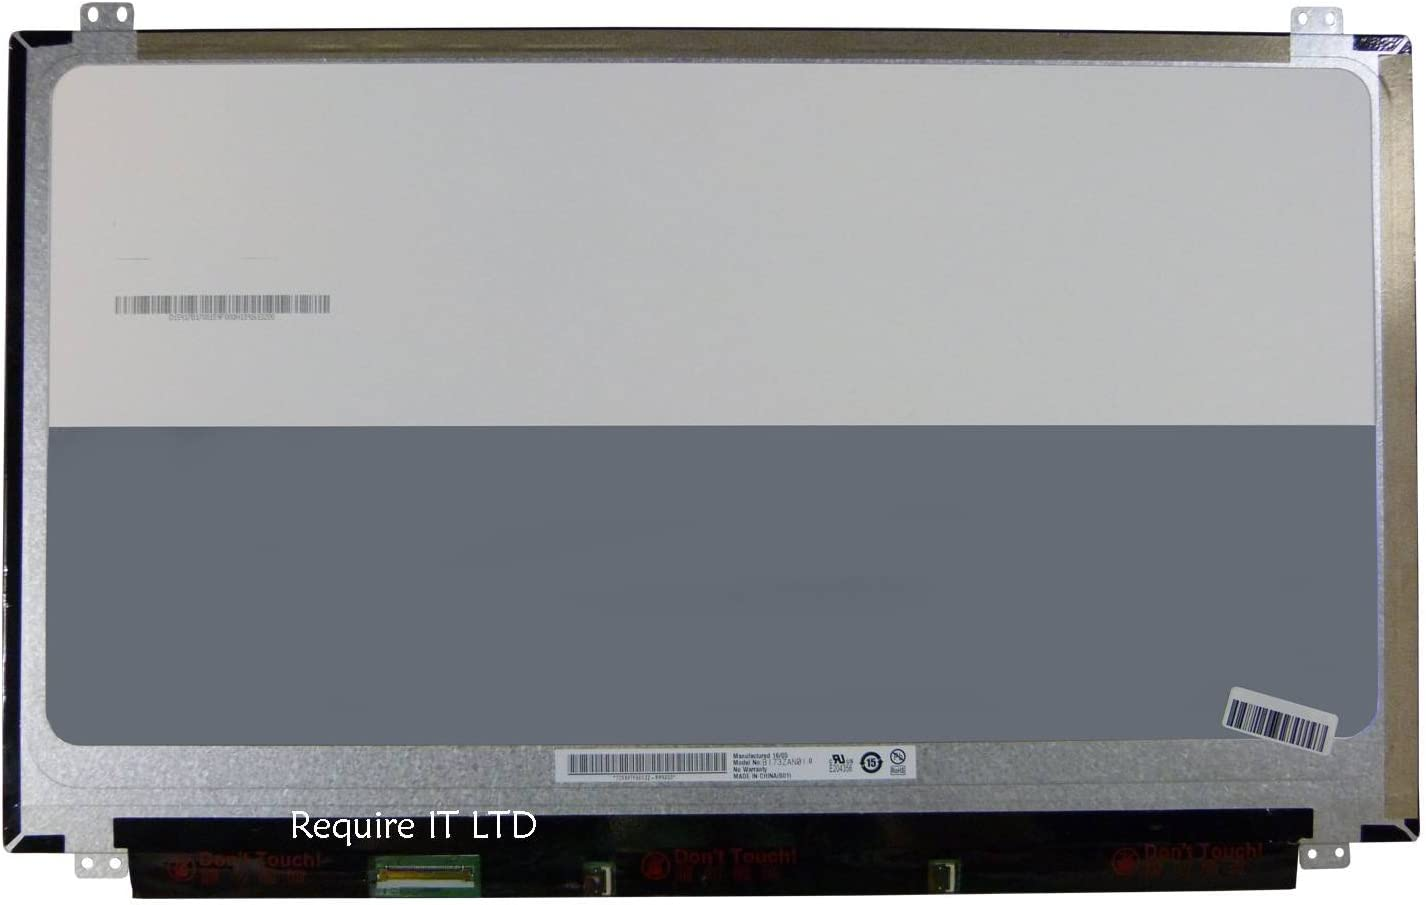 HD 1366x768 LCD LED Display with Tools Glossy SCREENARAMA New Screen Replacement for Dell P//N 6HTP8 DP//N 06HTP8